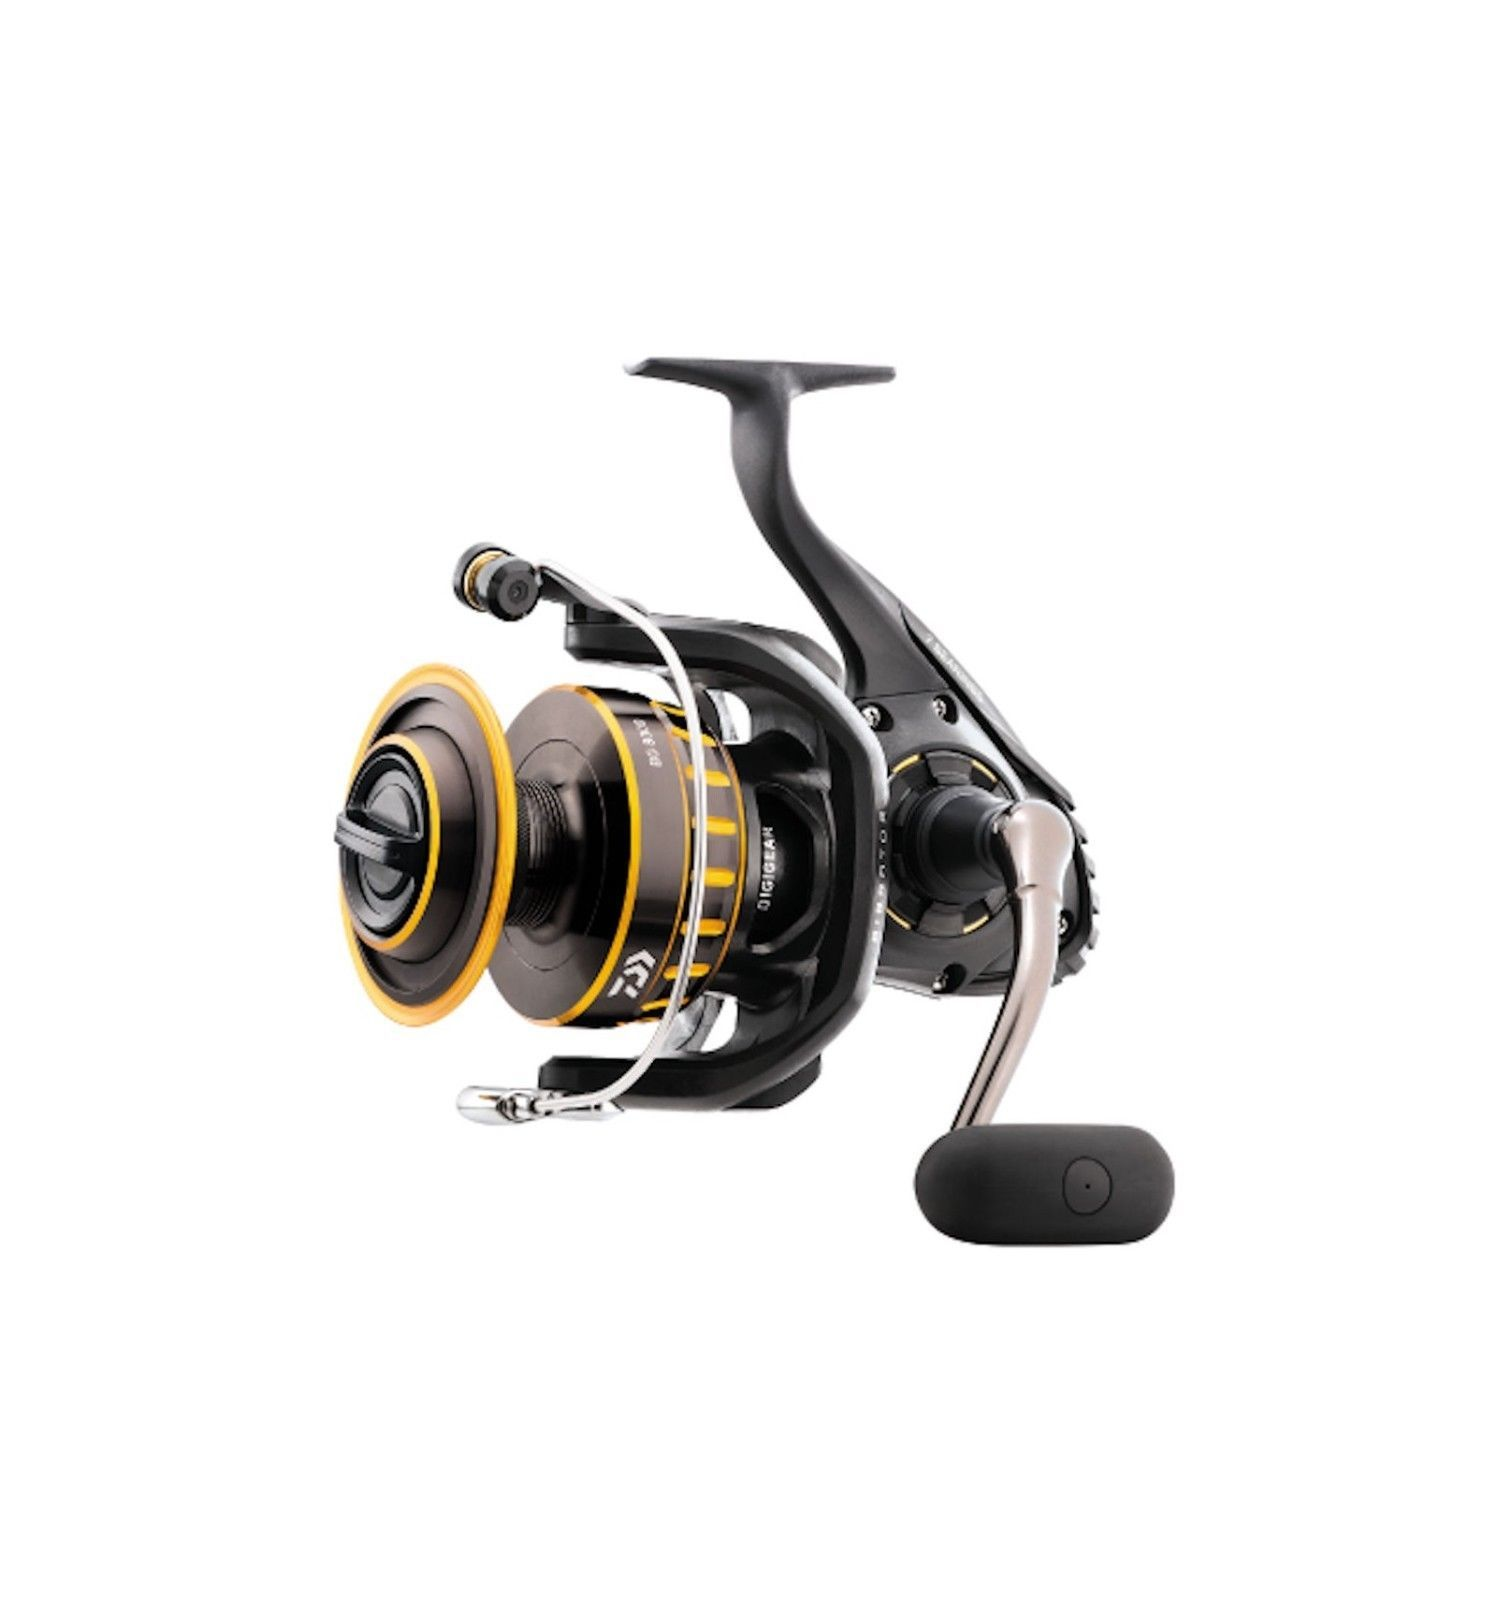 NEW Daiwa Black Gold BG 3000 Saltwater Spinning Fishing Reel BG3000